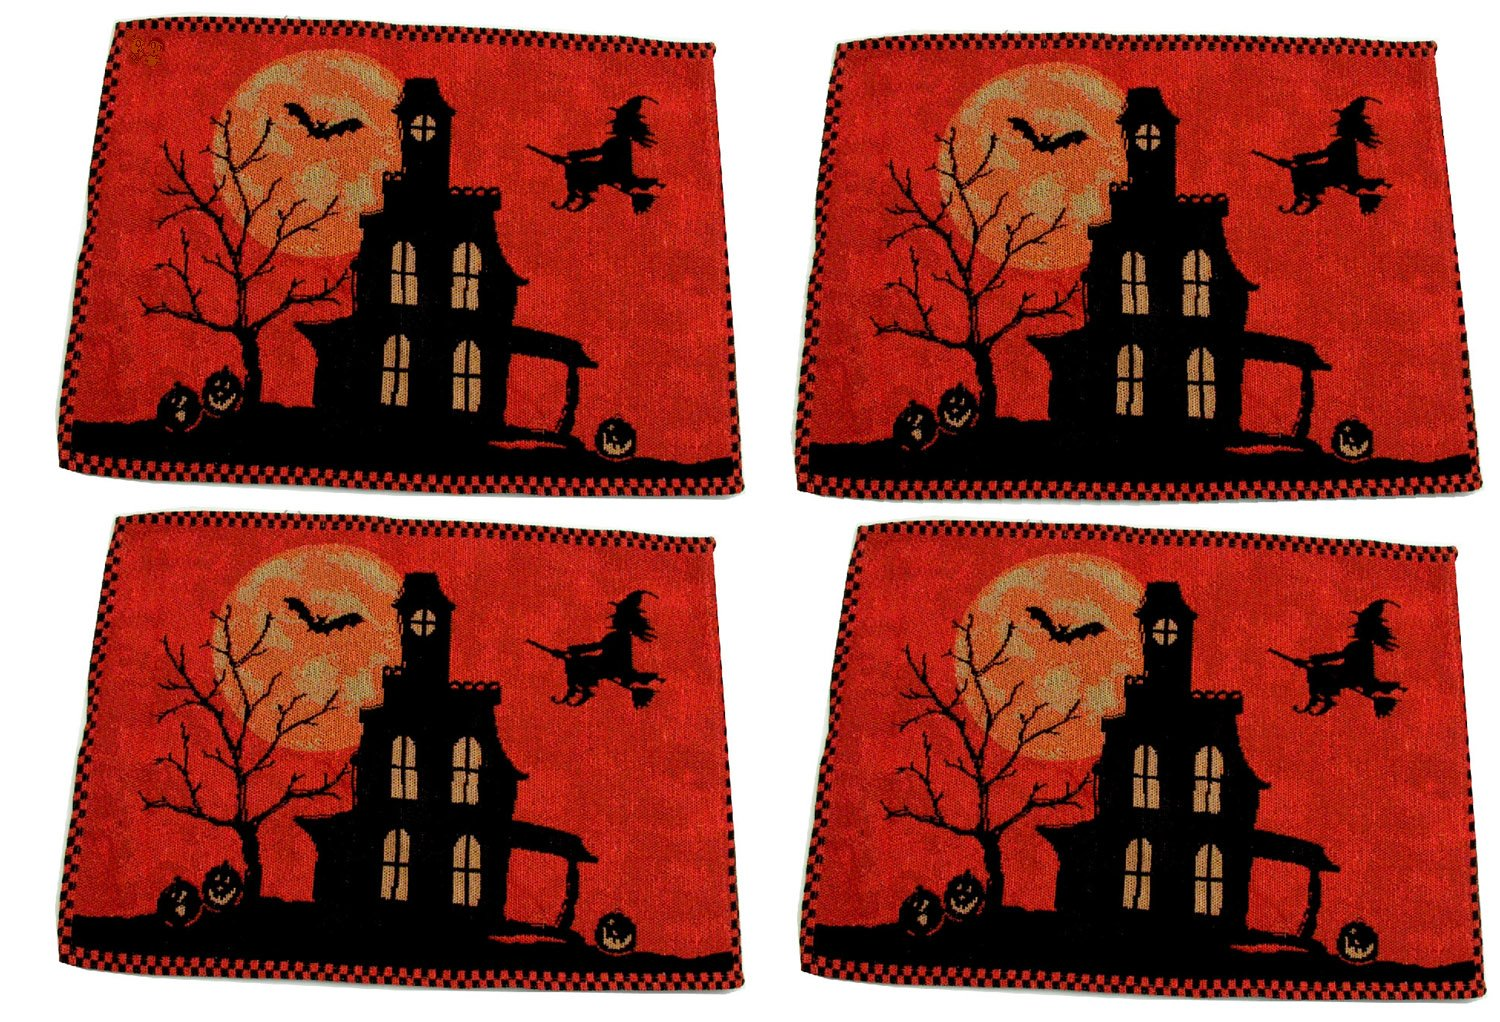 Halloween Fabric Kitchen Place Mats Set of 4 Haunted House Bats Witch  Orange Black NIP - Make a ghastly presentation with these 4 Halloween  placemats. - Halloween Placemats Halloween Wikii